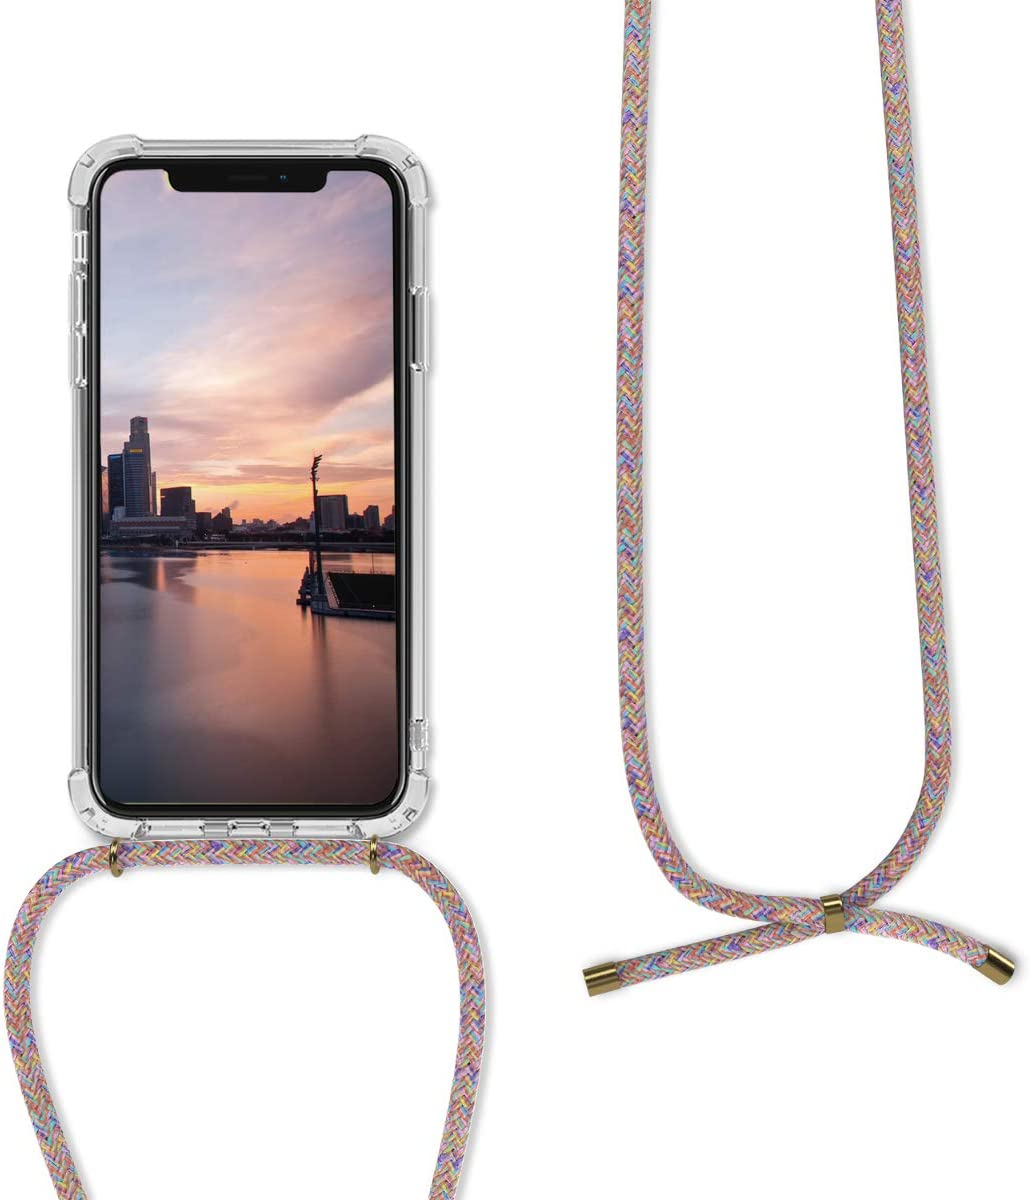 Transparent//Black//White kwmobile Crossbody Case Compatible with Apple iPhone XR Clear Transparent TPU Cell Phone Cover with Neck Cord Lanyard Strap